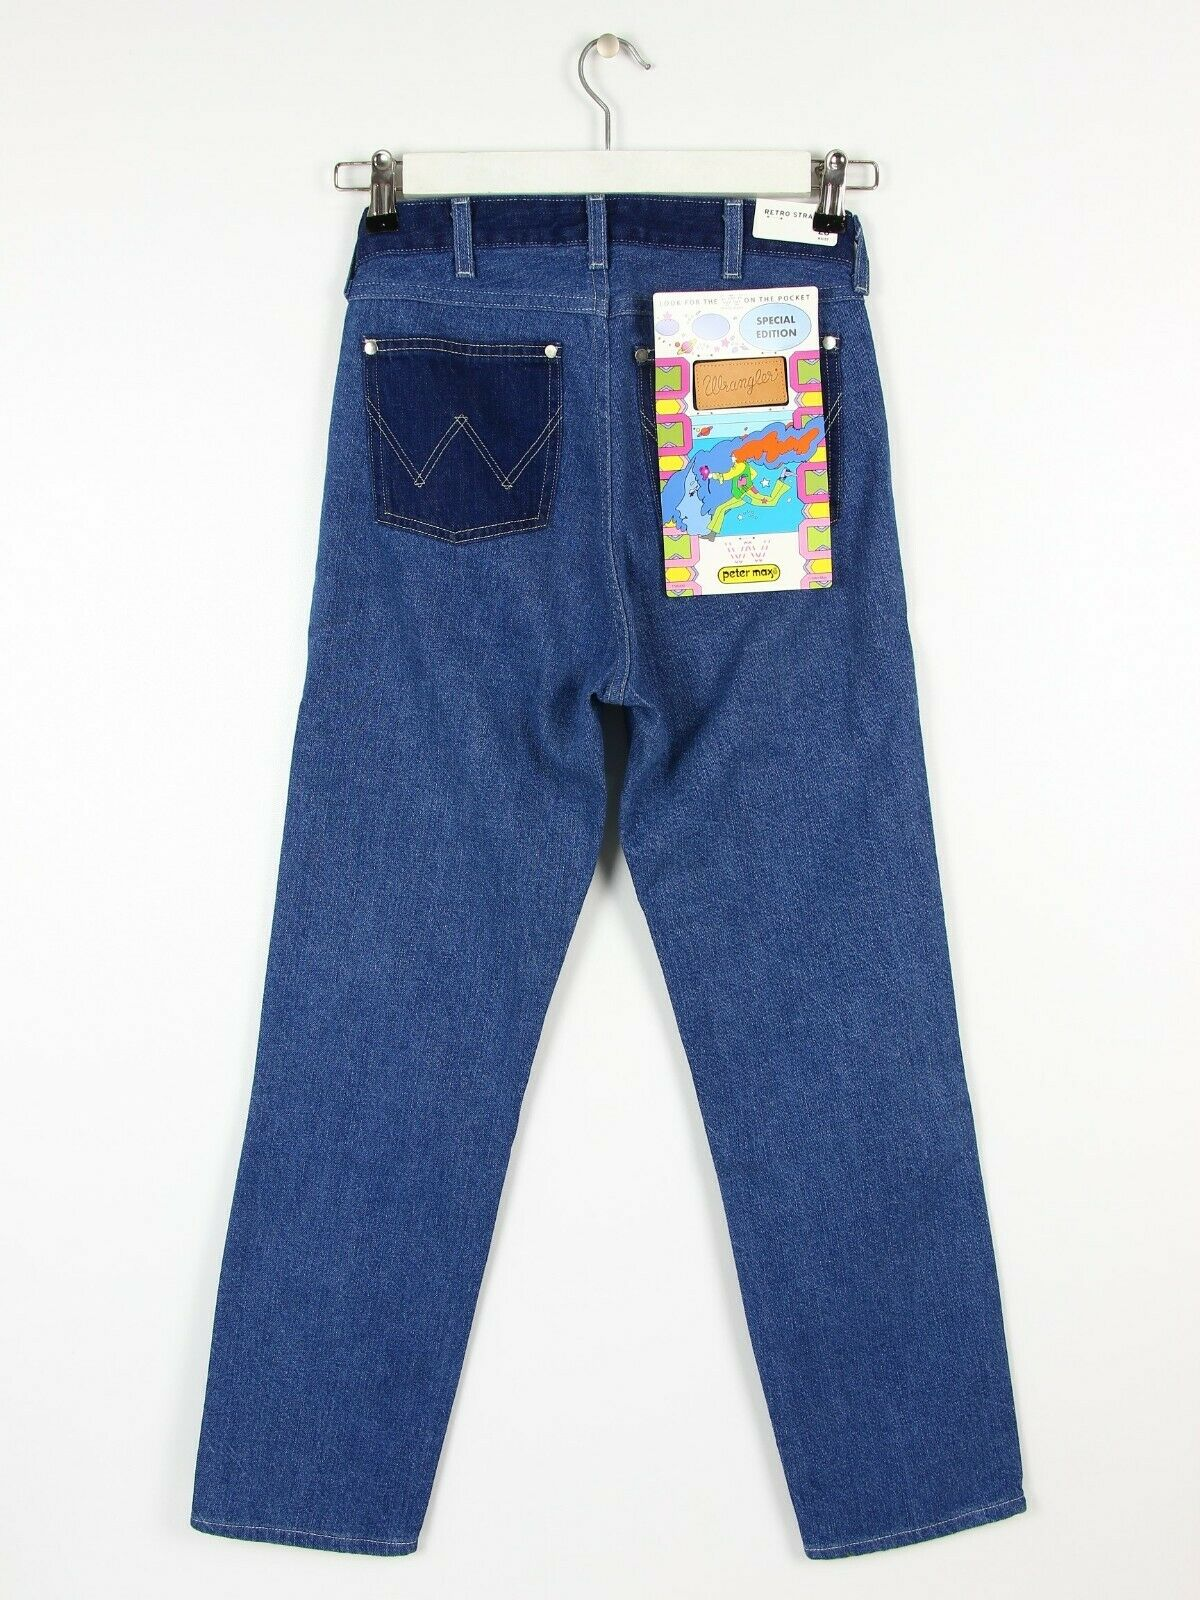 NEW WRANGLER X PETER MAX  RETRO STRAIGHT JEANS BOYFRIEND CROP MOM MID ANKLE